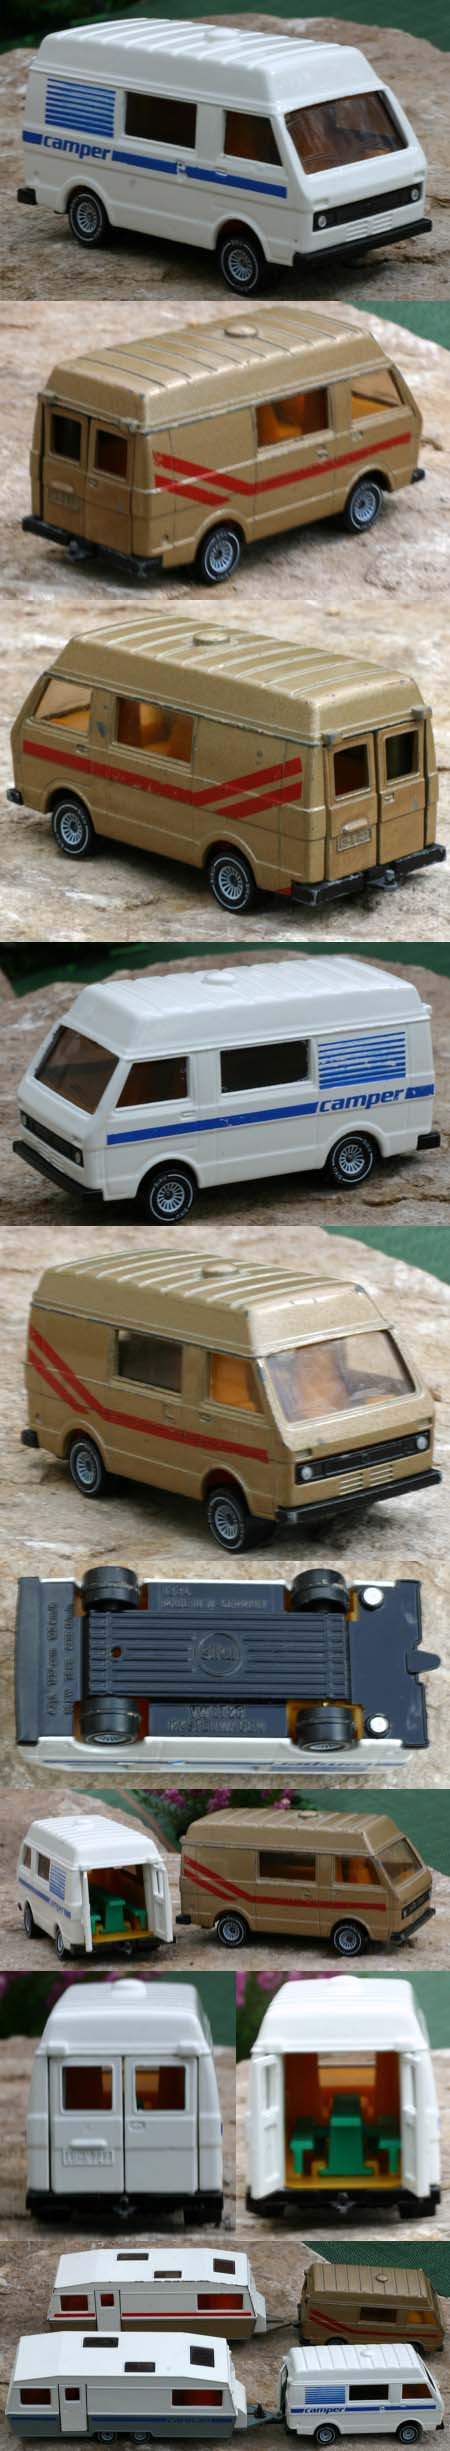 VW Transporter LT 28